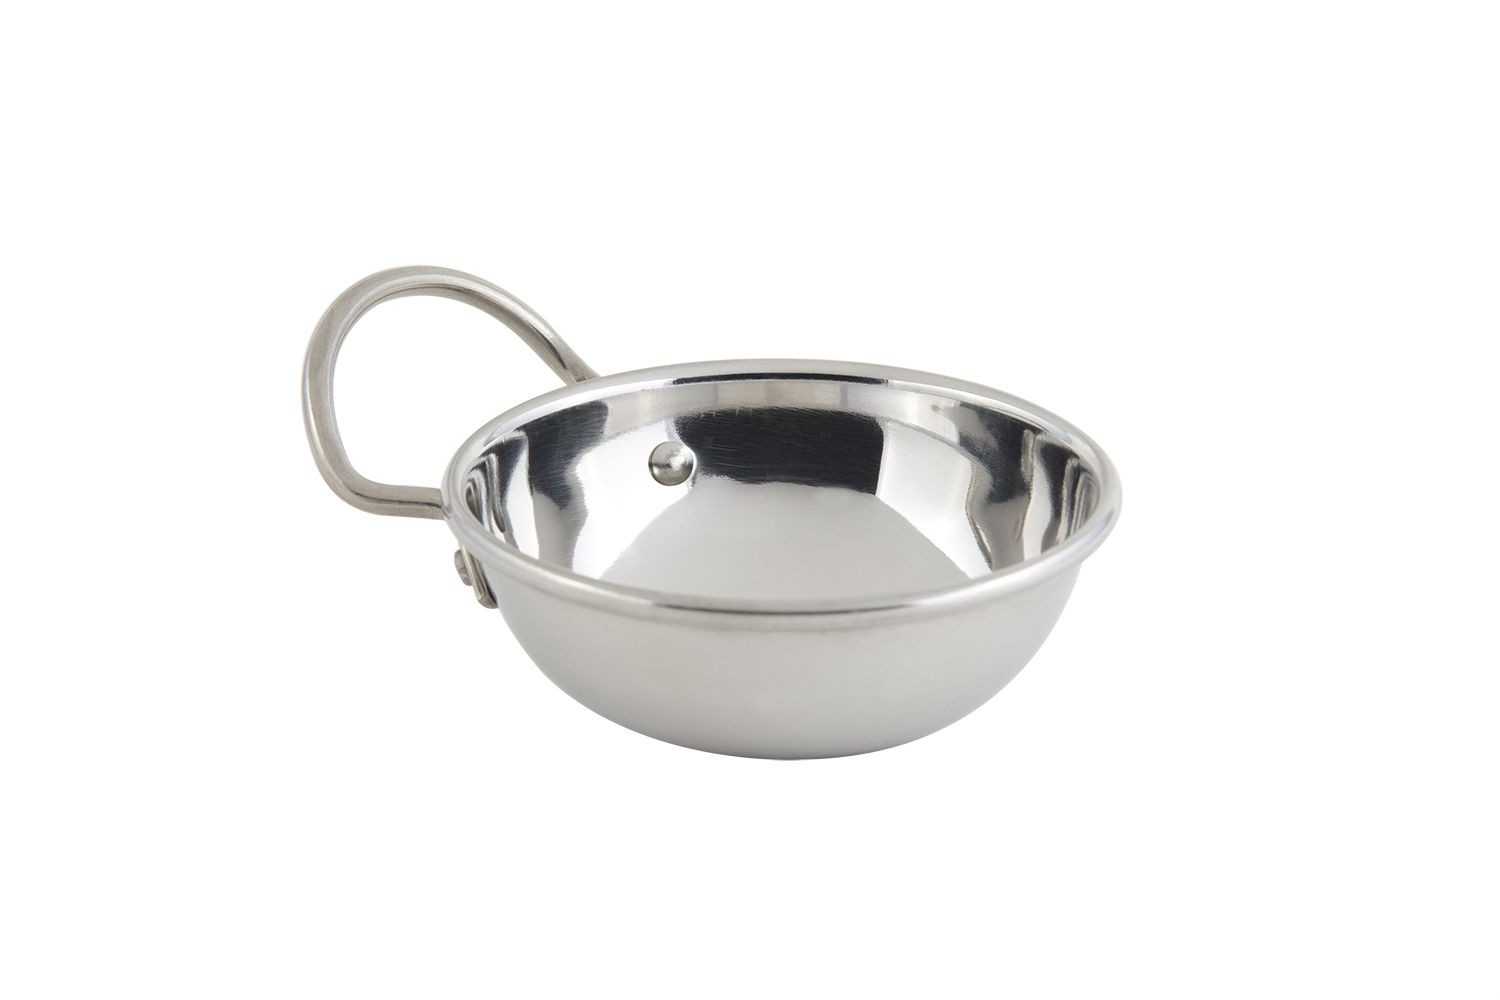 Bon Chef 60035 Mini Casserole Dish with Loop Handle, 6 oz.